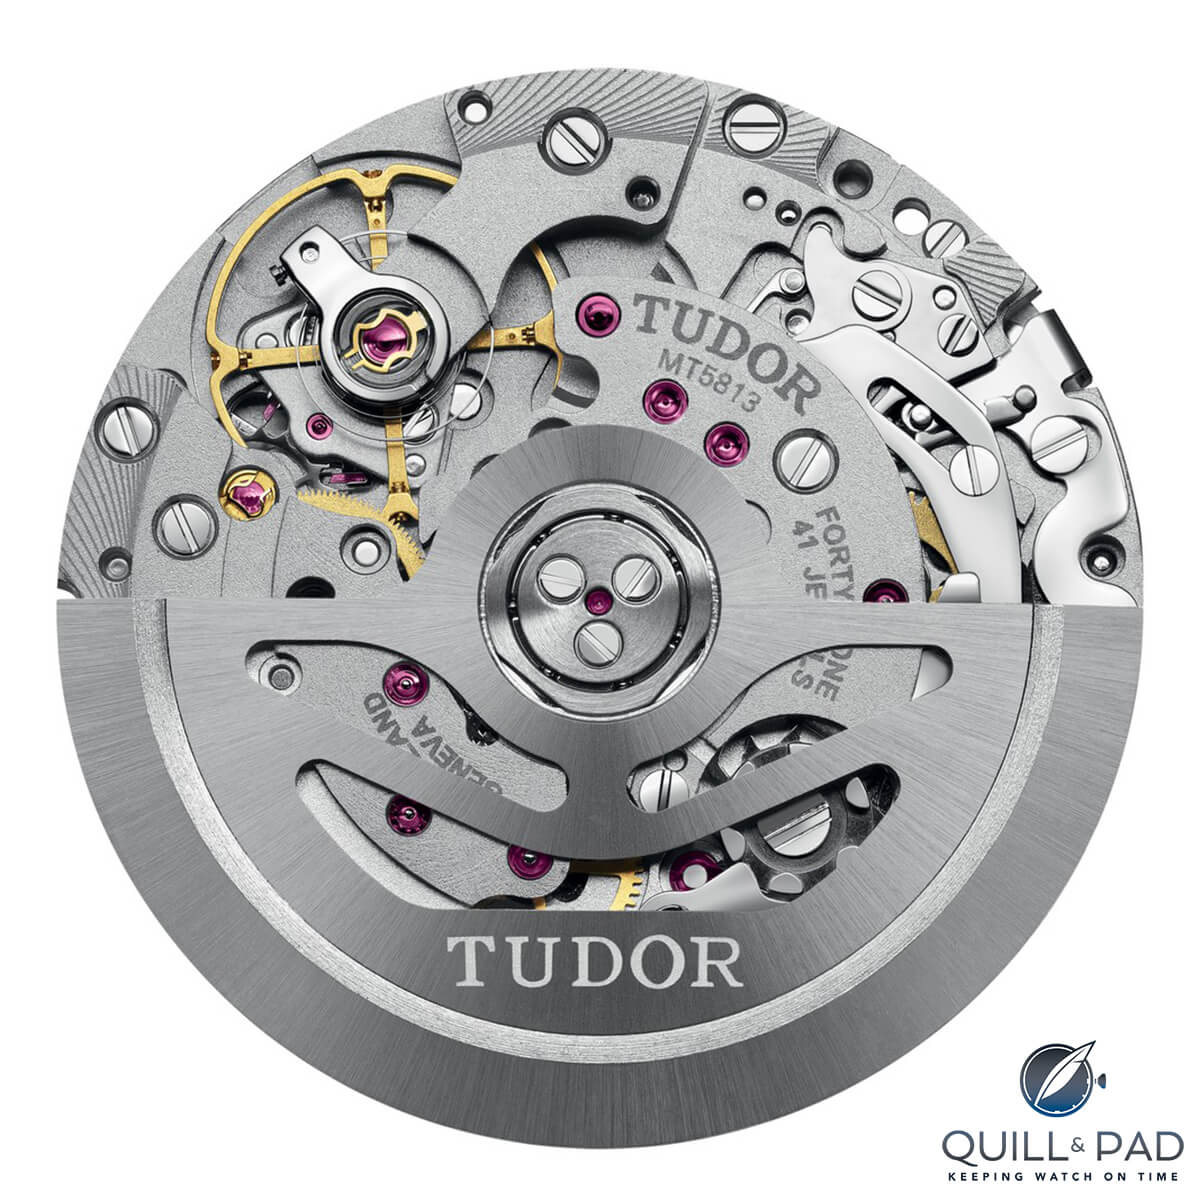 Tudor And Breitling: Two Sports Watch Manufacturers